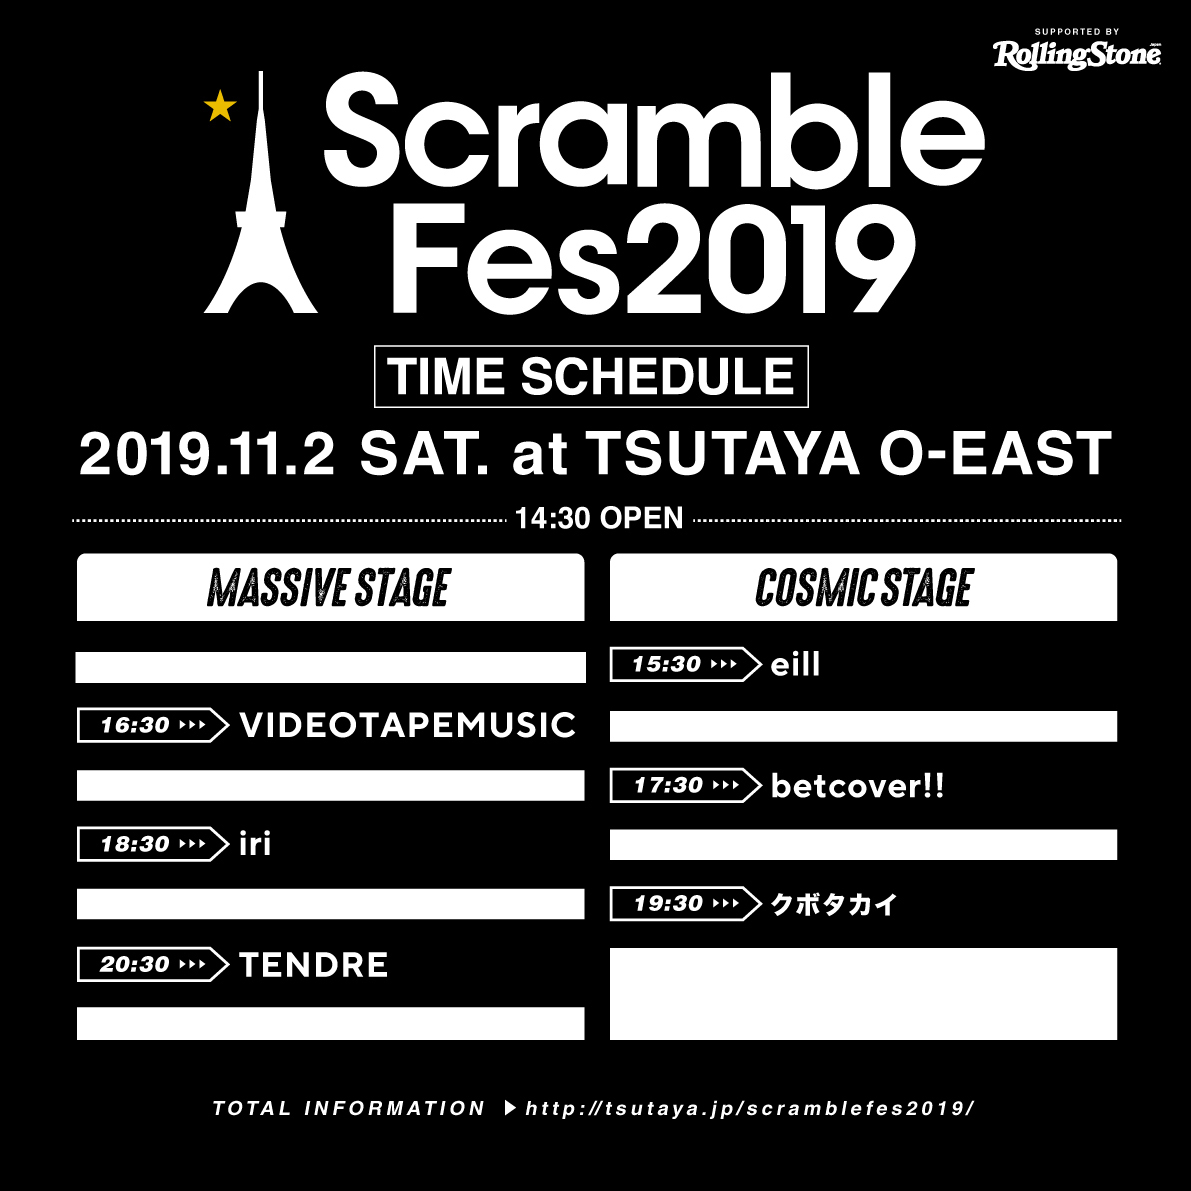 Scramble Fes 2019 supported by Rolling Stone Japan